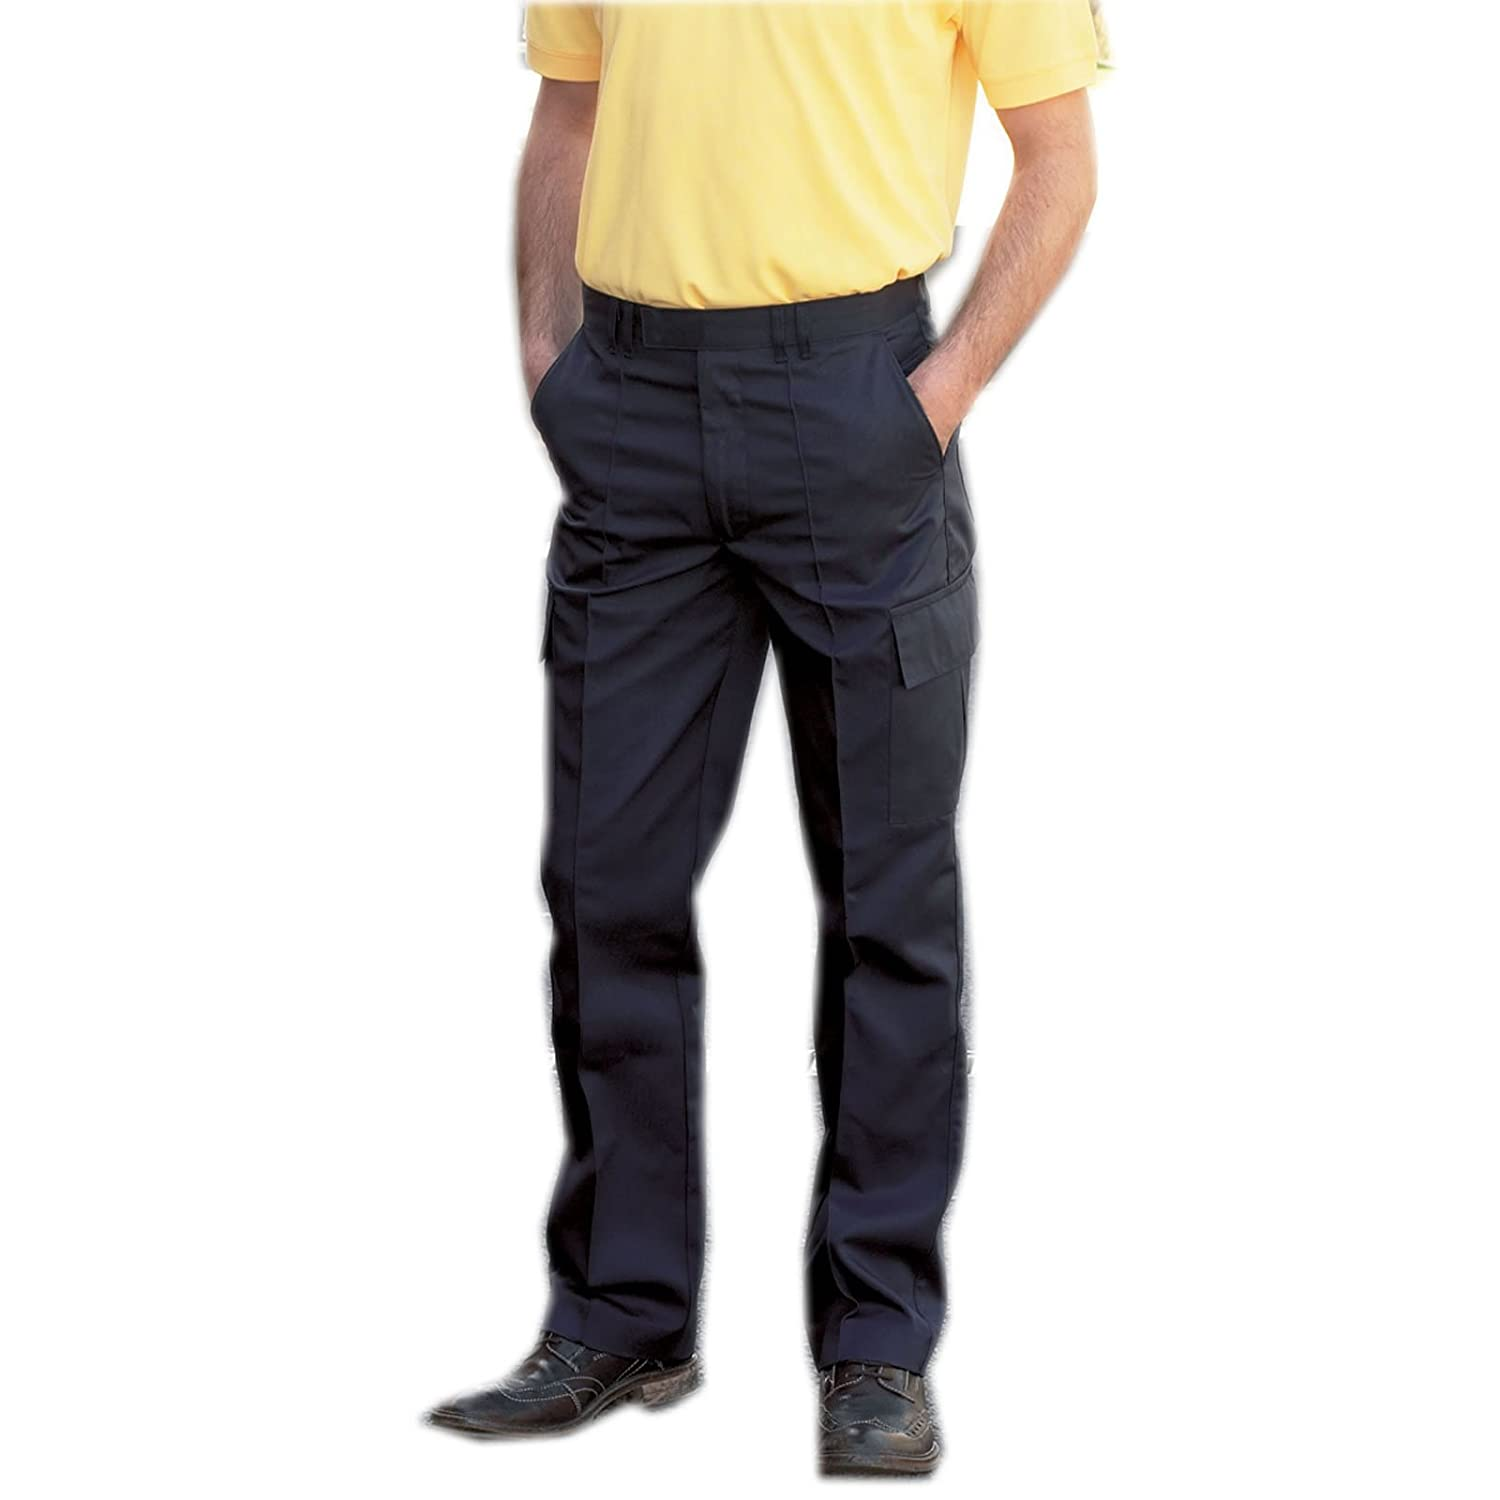 Mens Dickies Action Work Trousers WD814 in Black